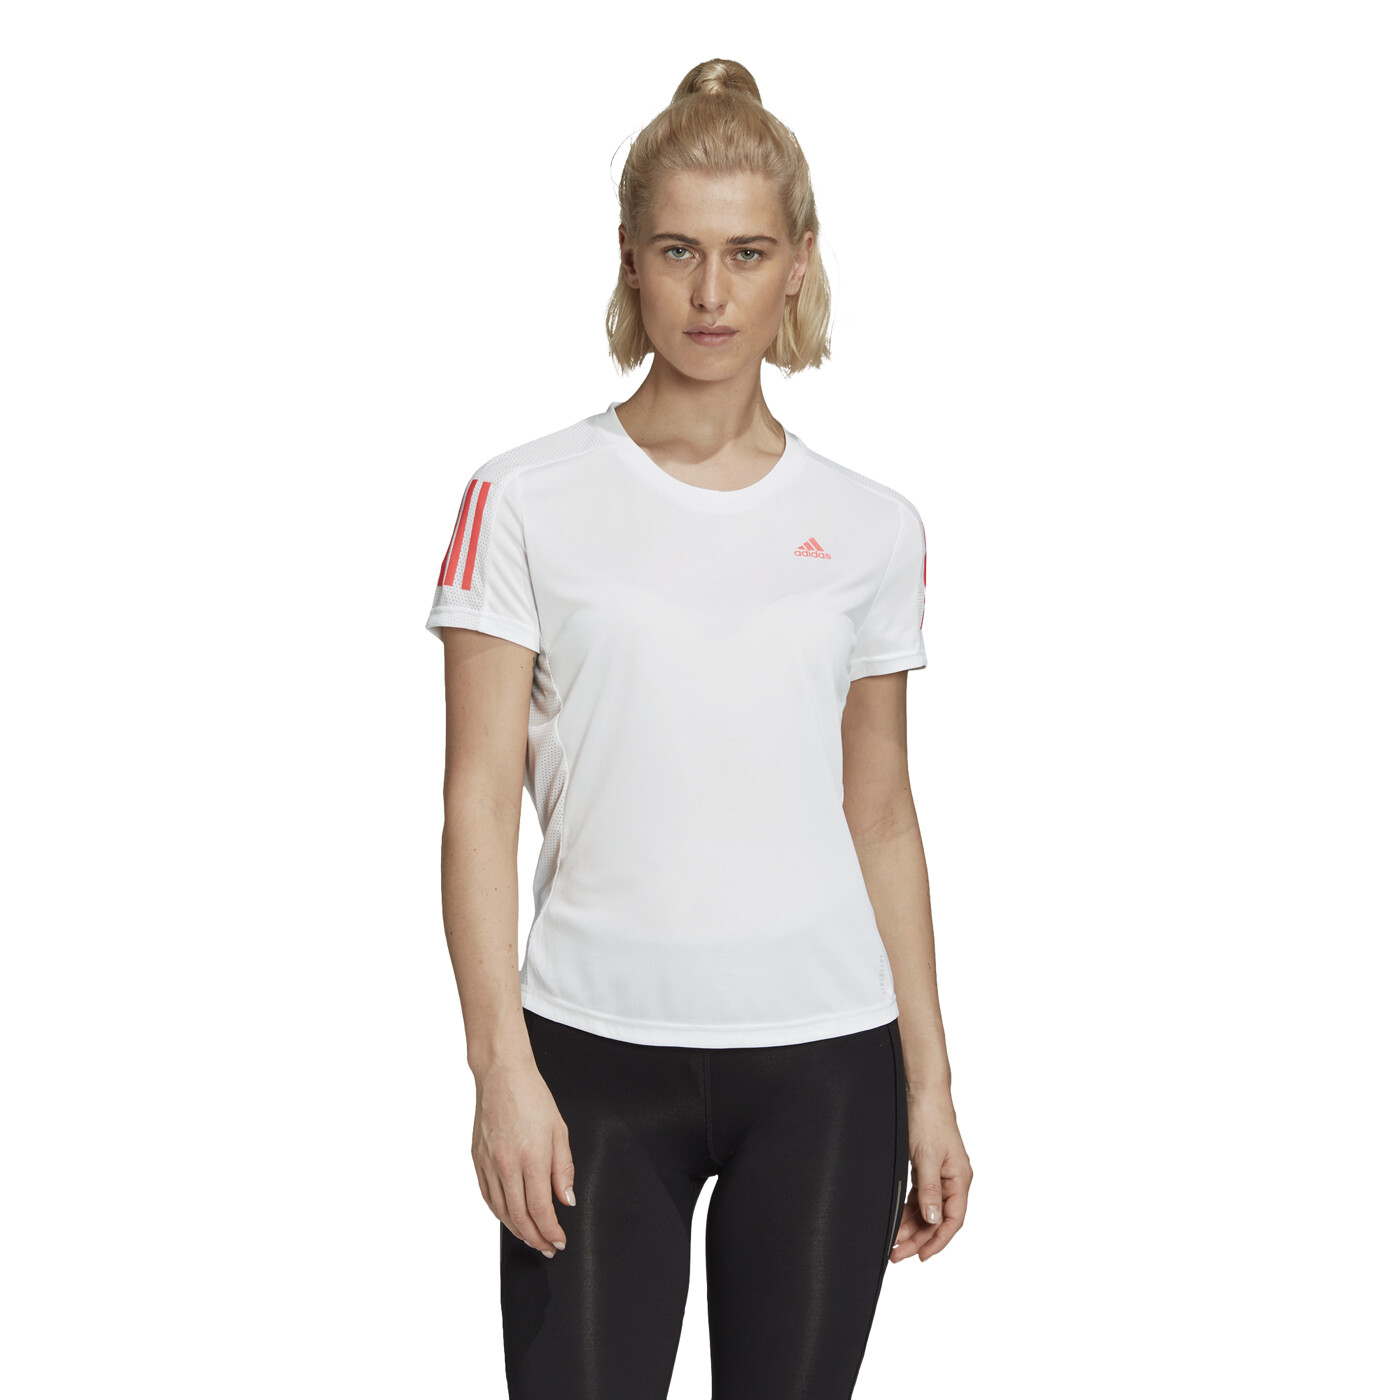 ADIDAS OWN THE RUN TEE - Damen